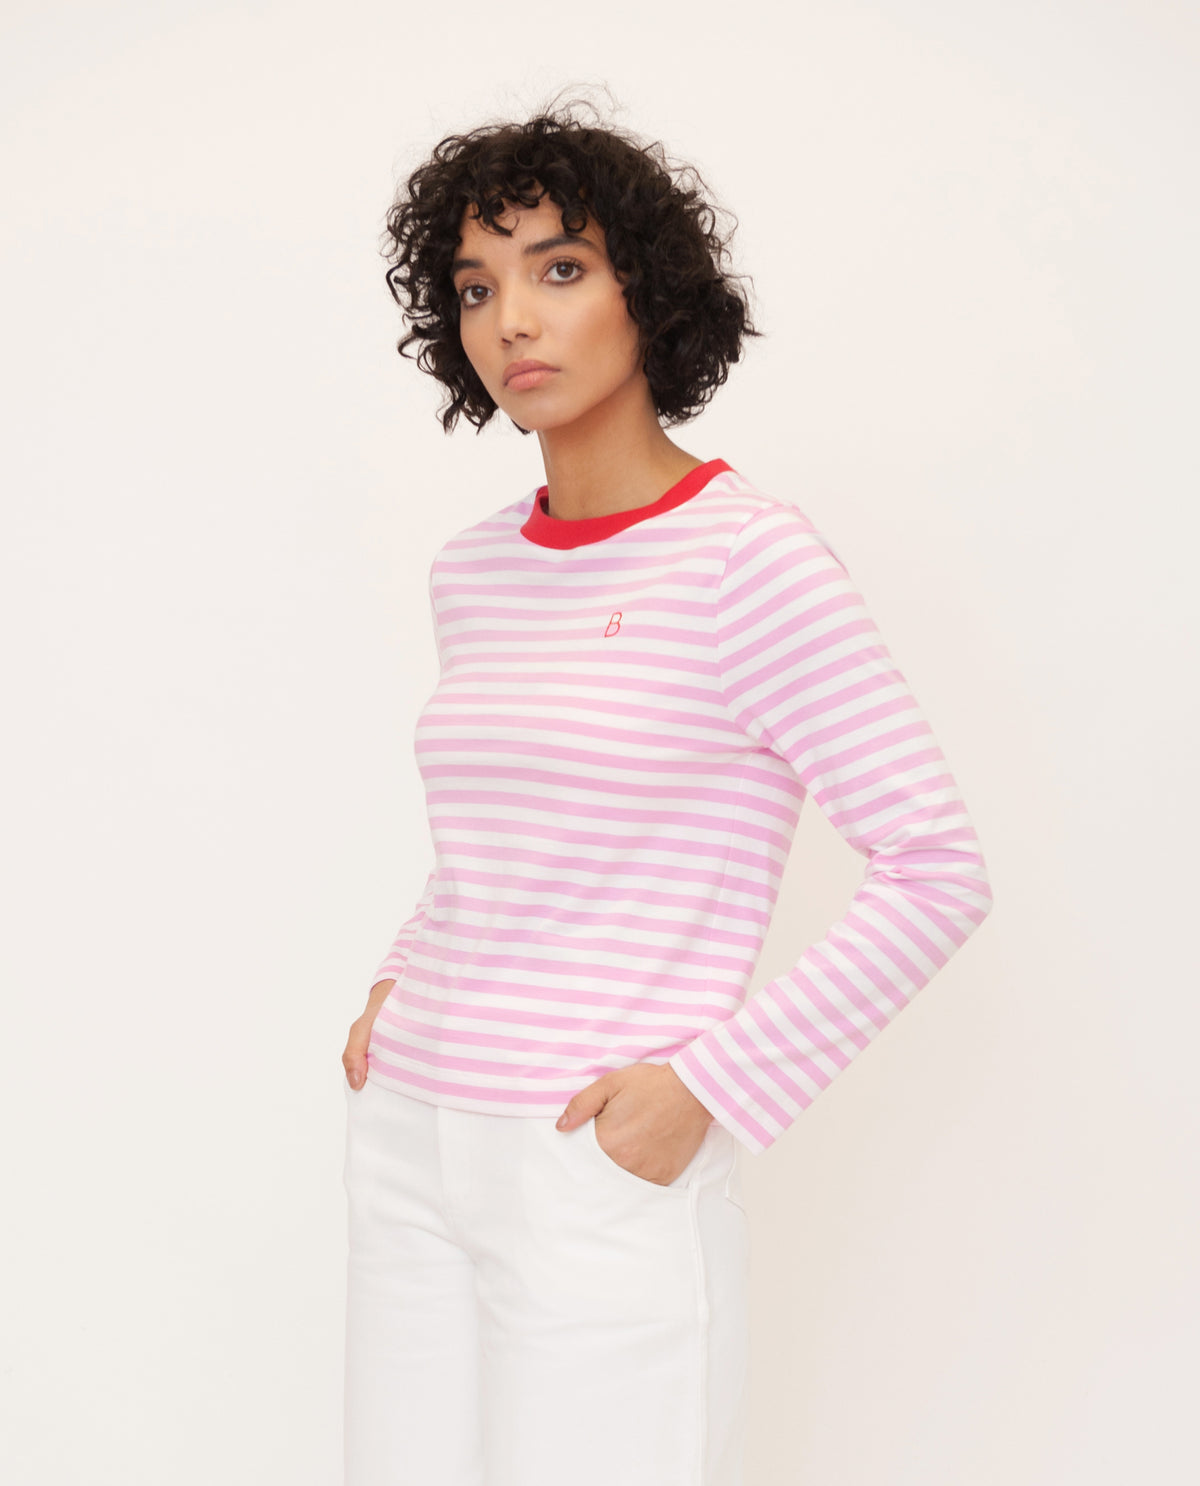 SHOBA Organic Cotton Top In Pink And Red